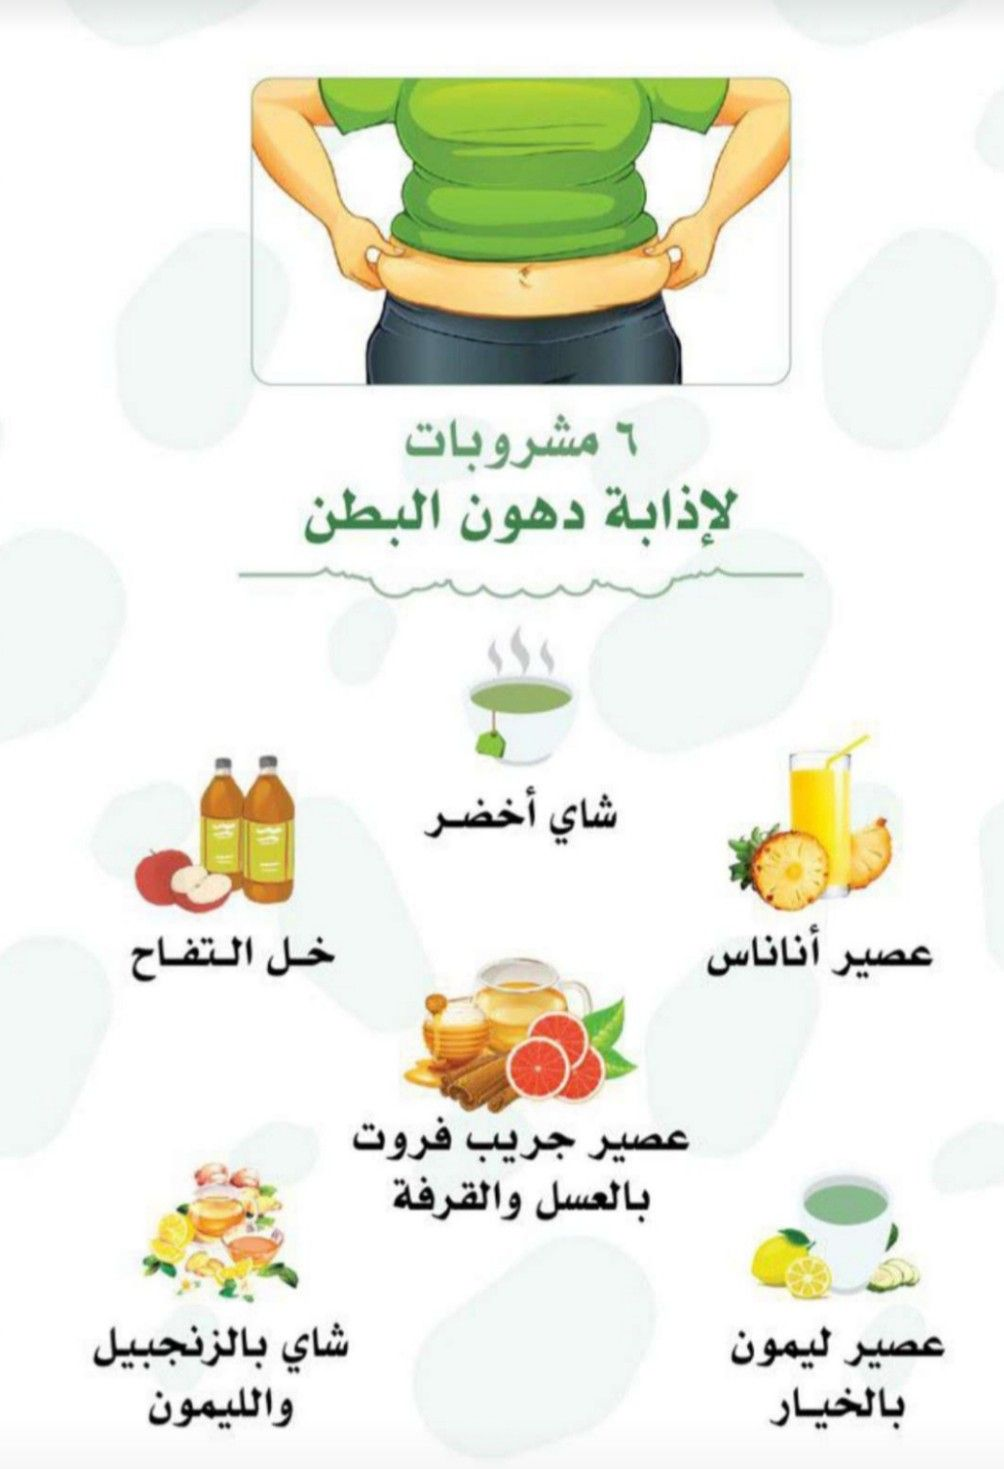 Pin By Mohammed Al Harbi On صحتي Health Fitness Food Health Fitness Nutrition Workout Food